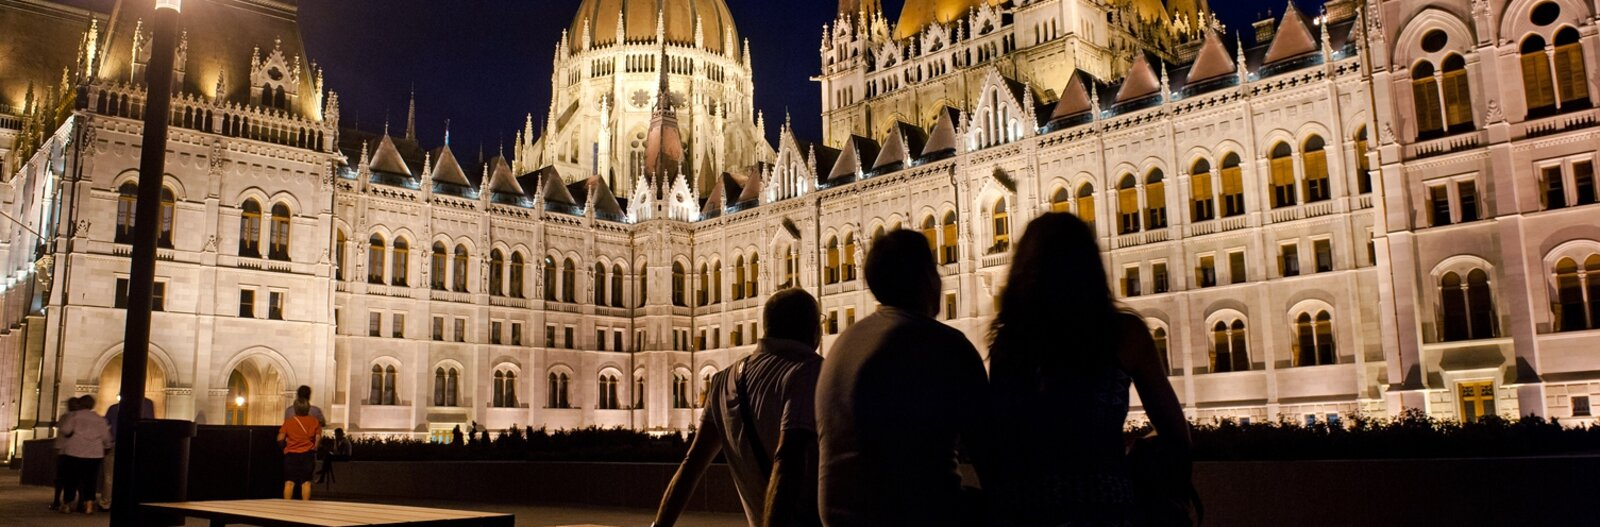 28 sedate spots for taking a break while sightseeing in Budapest